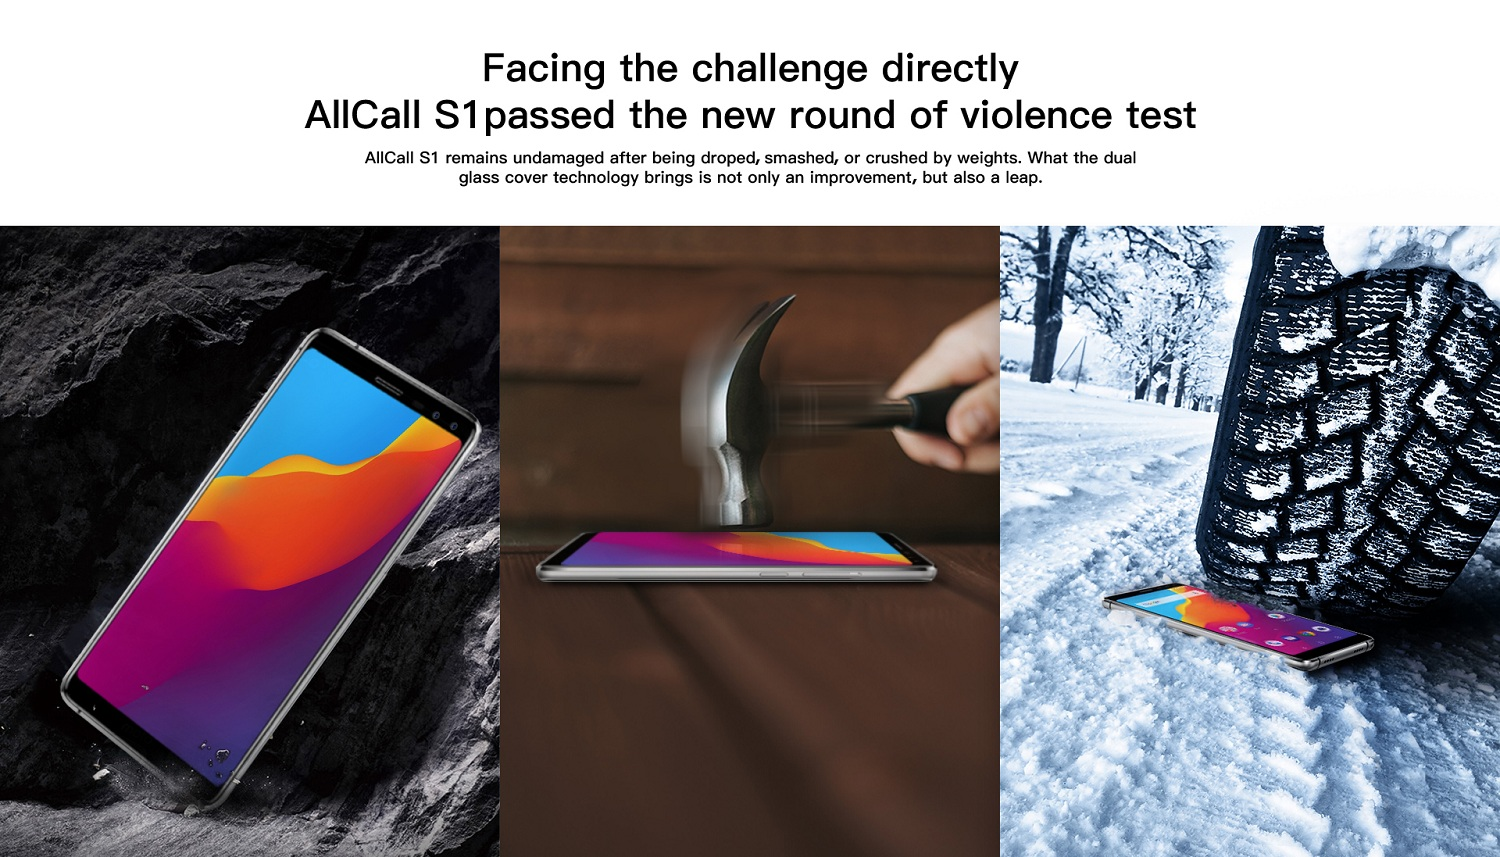 AllCall S1 screen: dual glass cover makes the toughness out of imagination